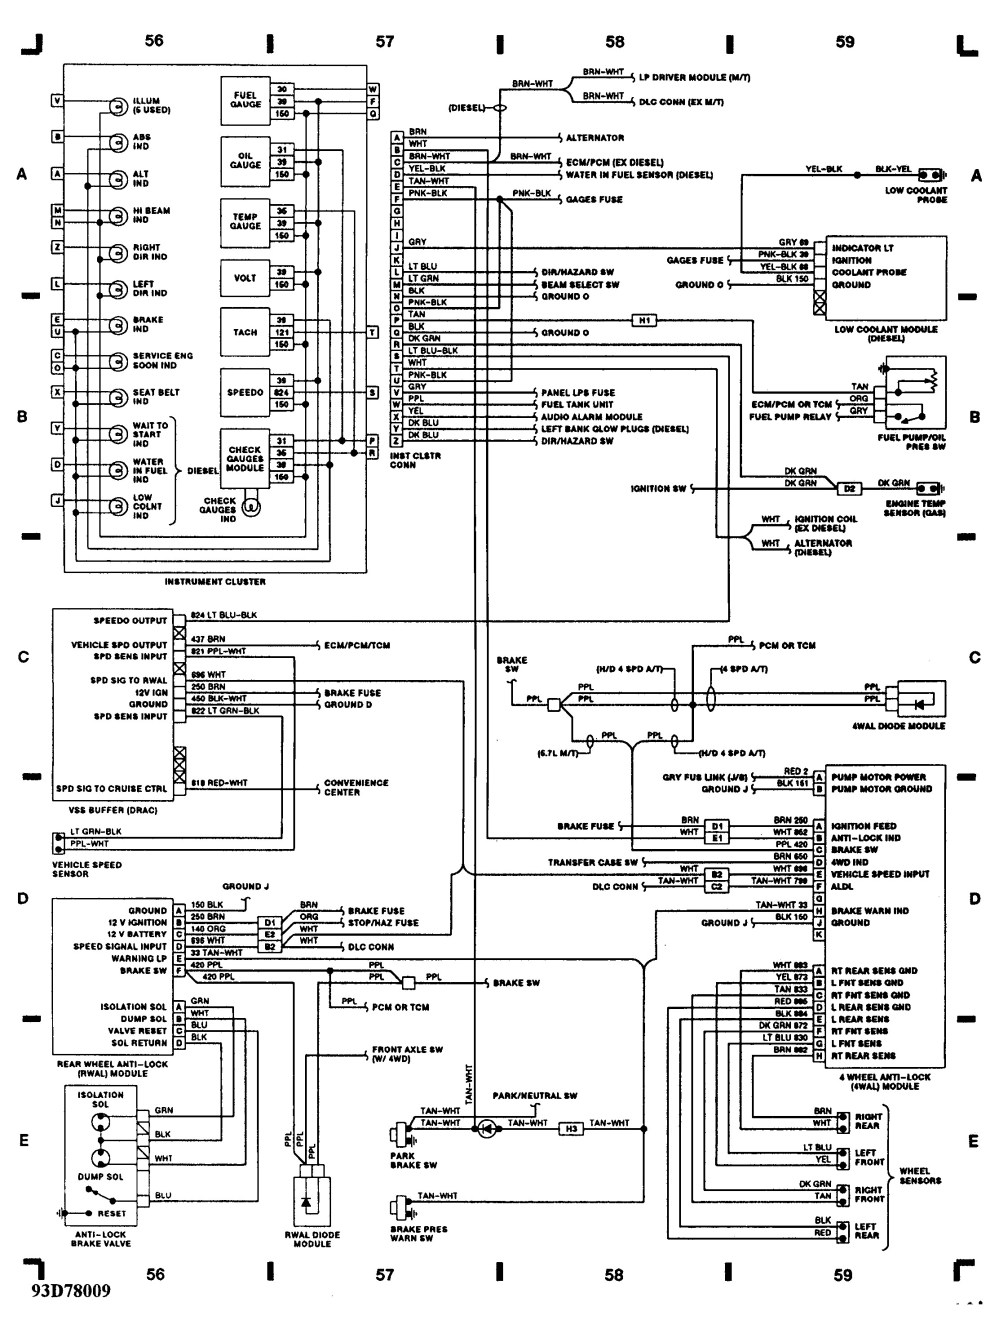 medium resolution of cat 3126 ecm wiring diagram caterpillar d1256 wiring diagram wiring diagrams u2022 rh wiringdiagramblog today